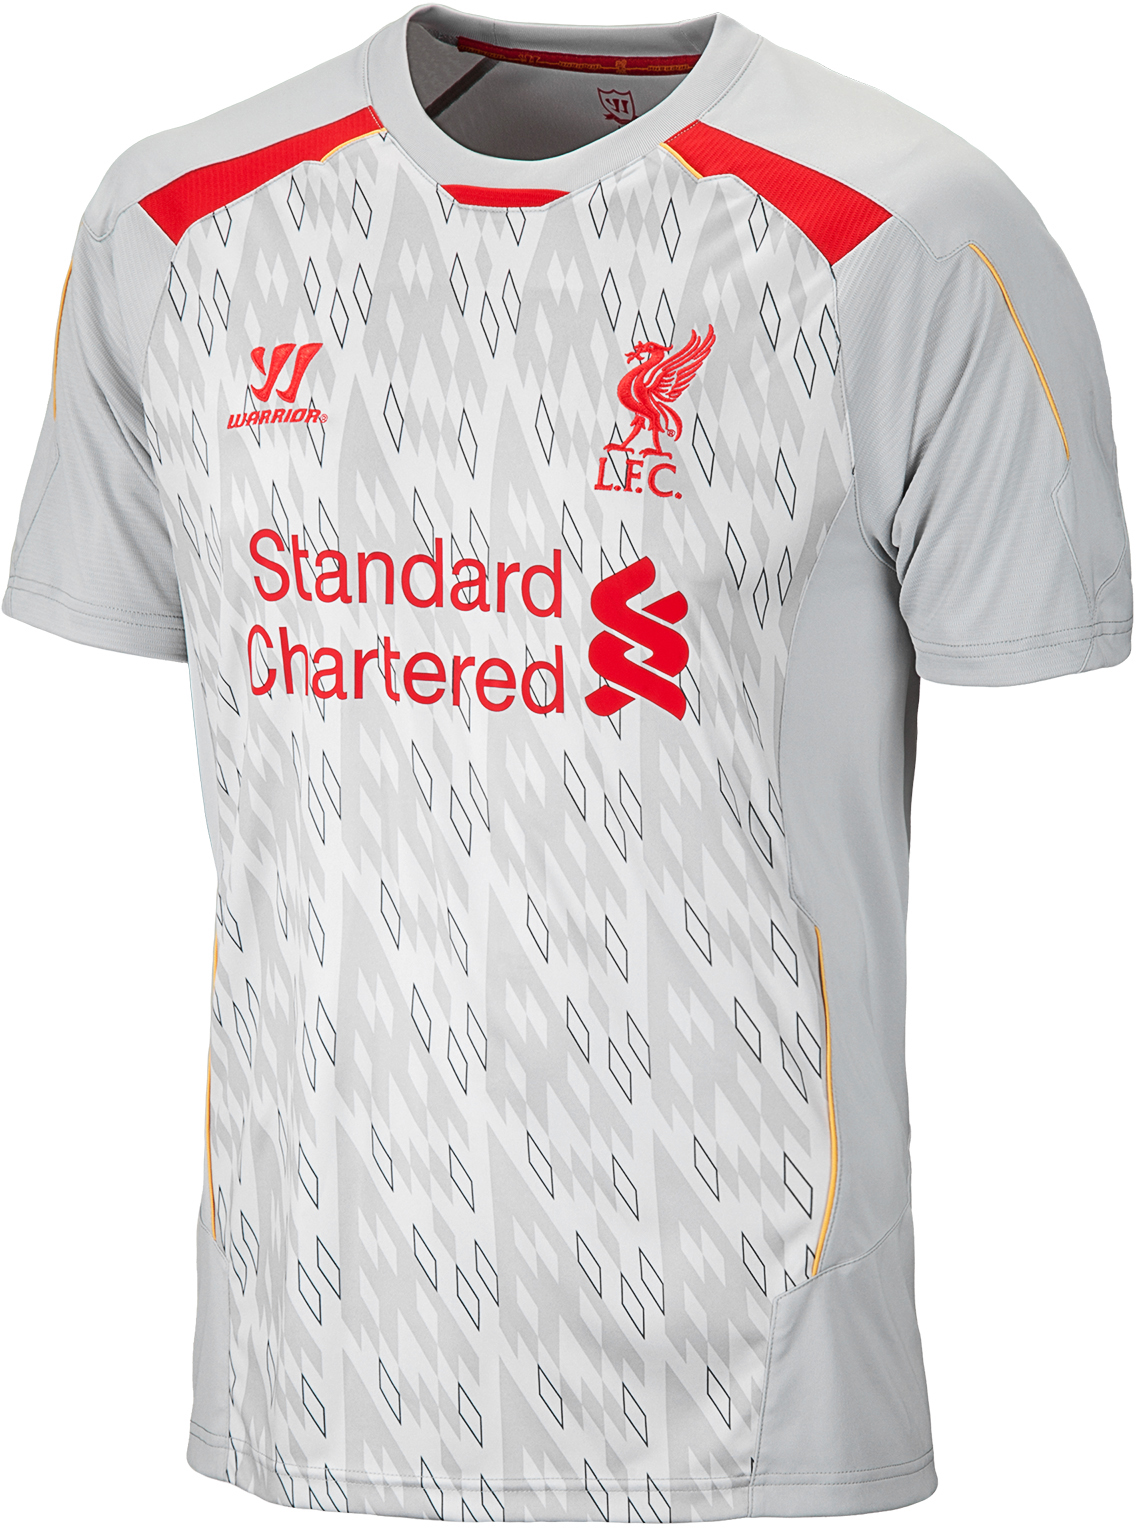 new product d1290 95aa1 liverpool kit sale